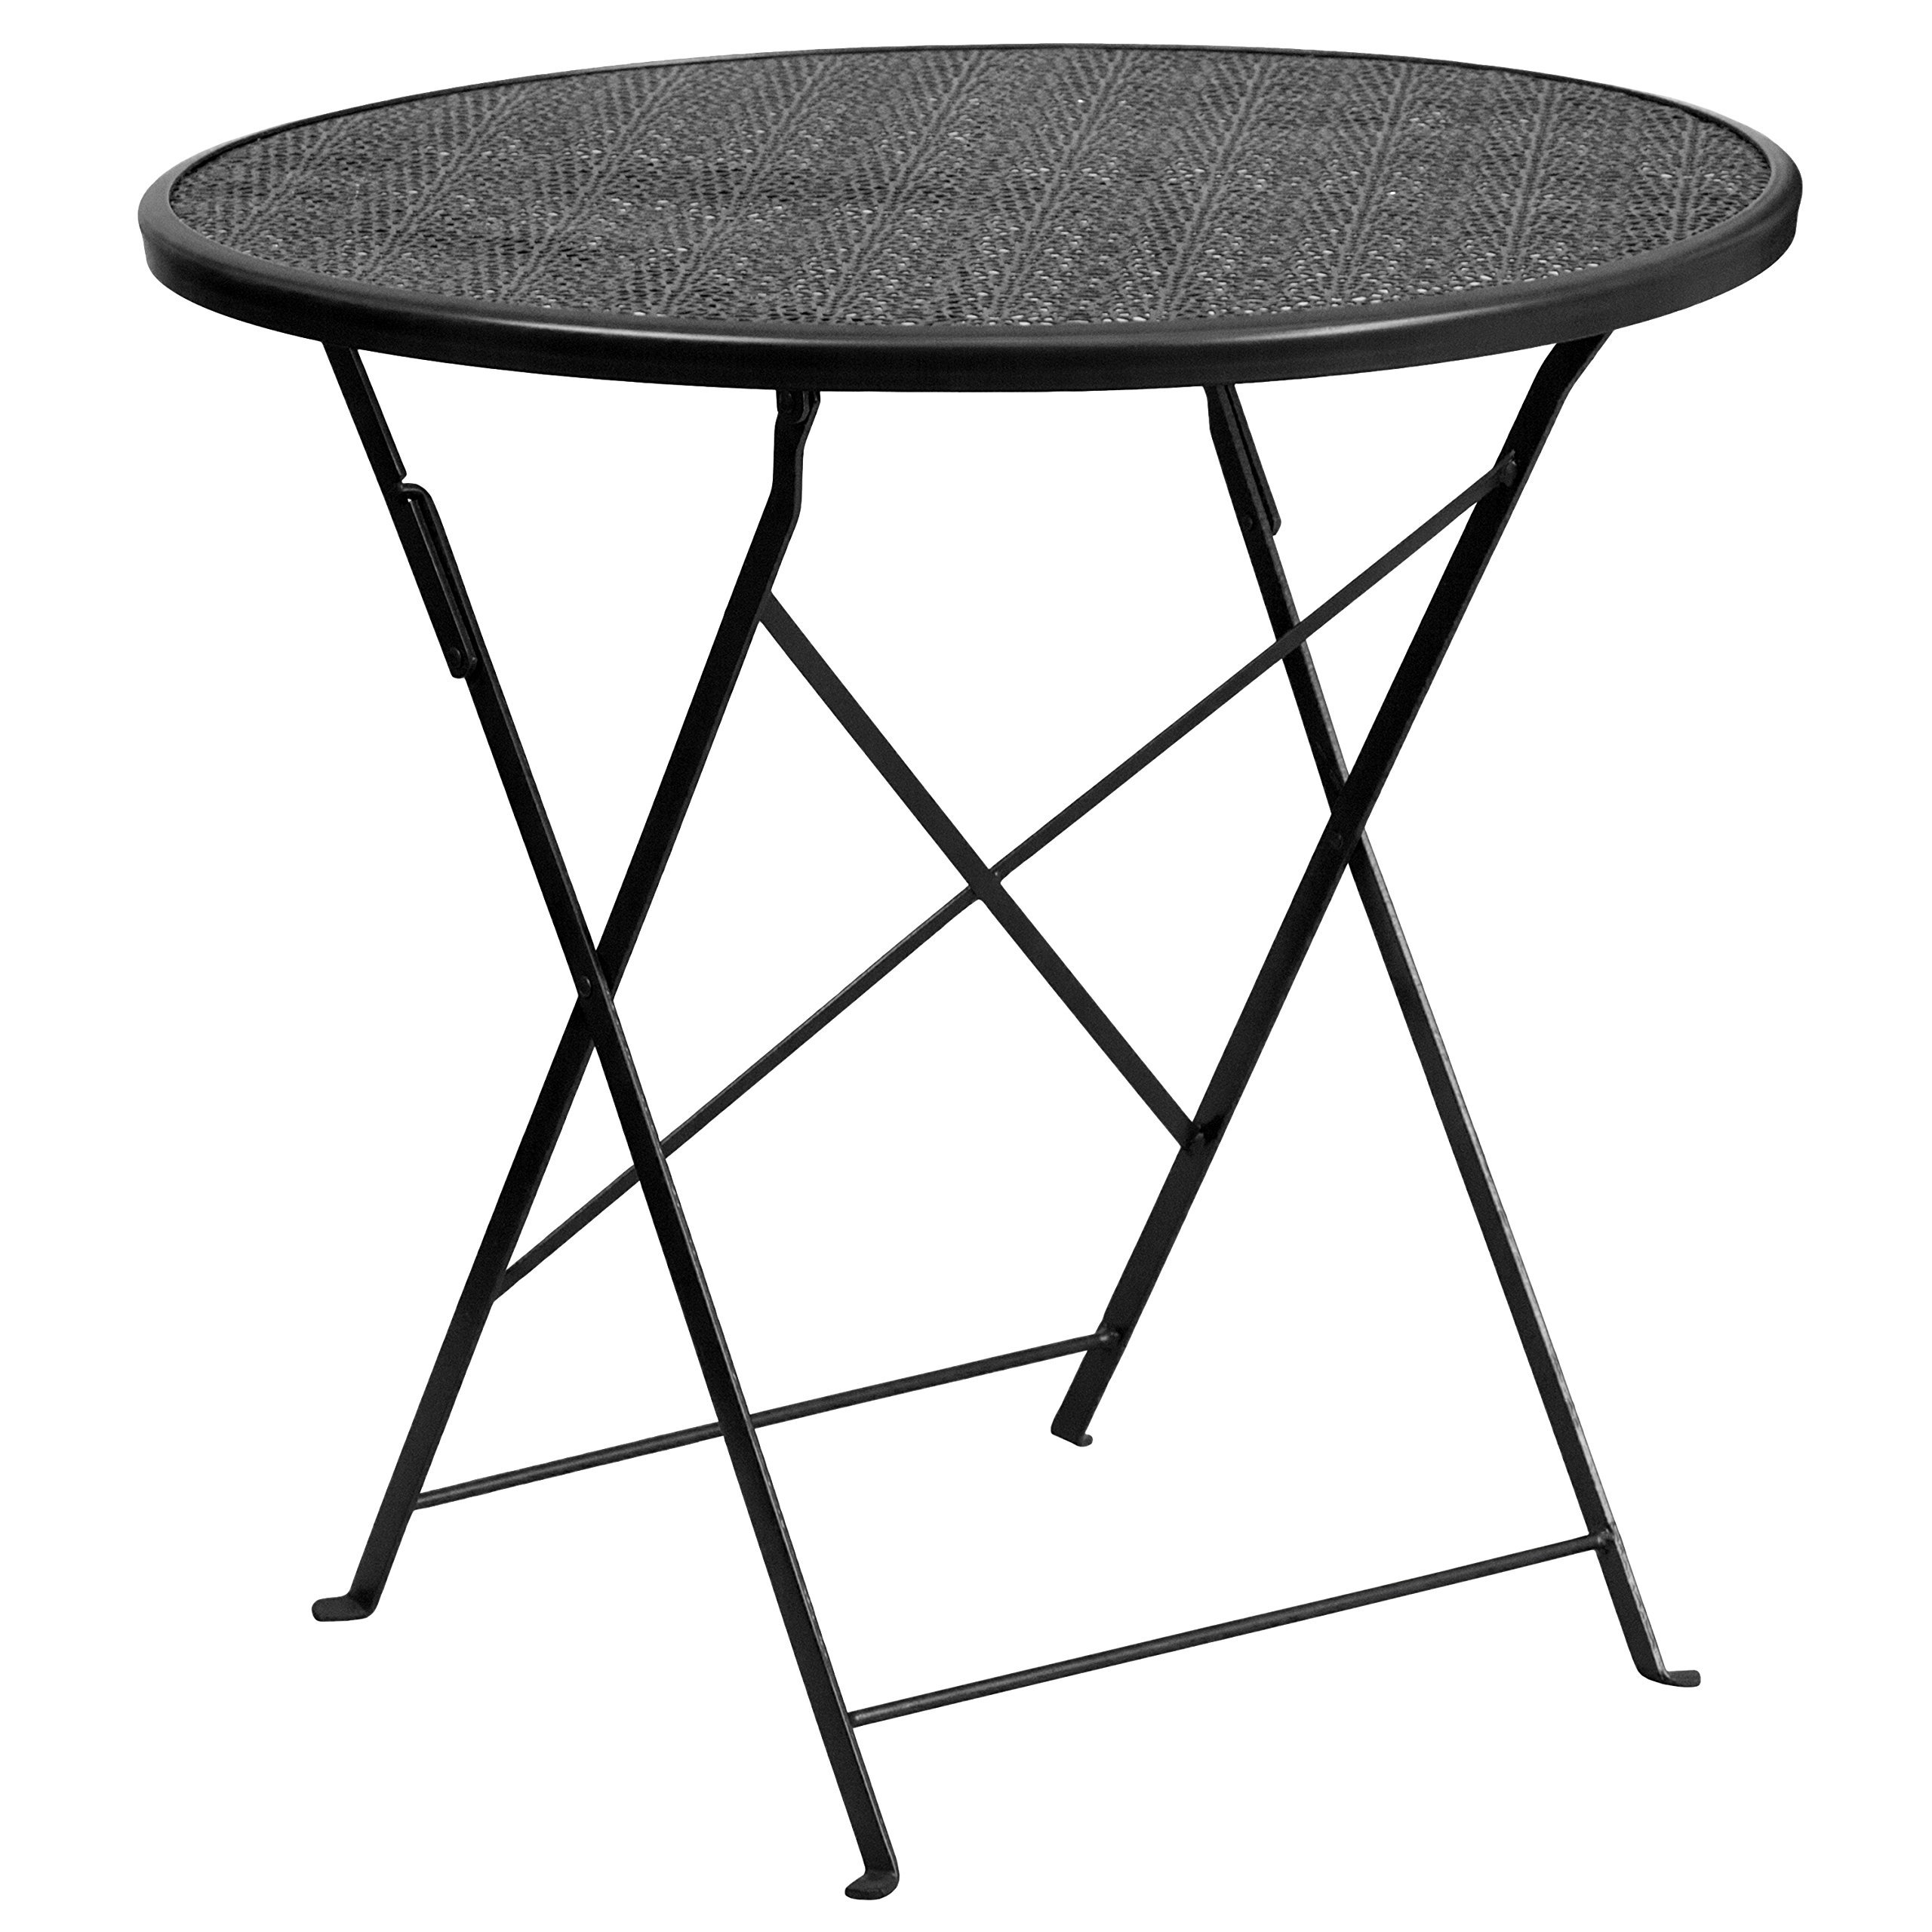 MFO 30'' Round Black Indoor-Outdoor Steel Folding Patio Table